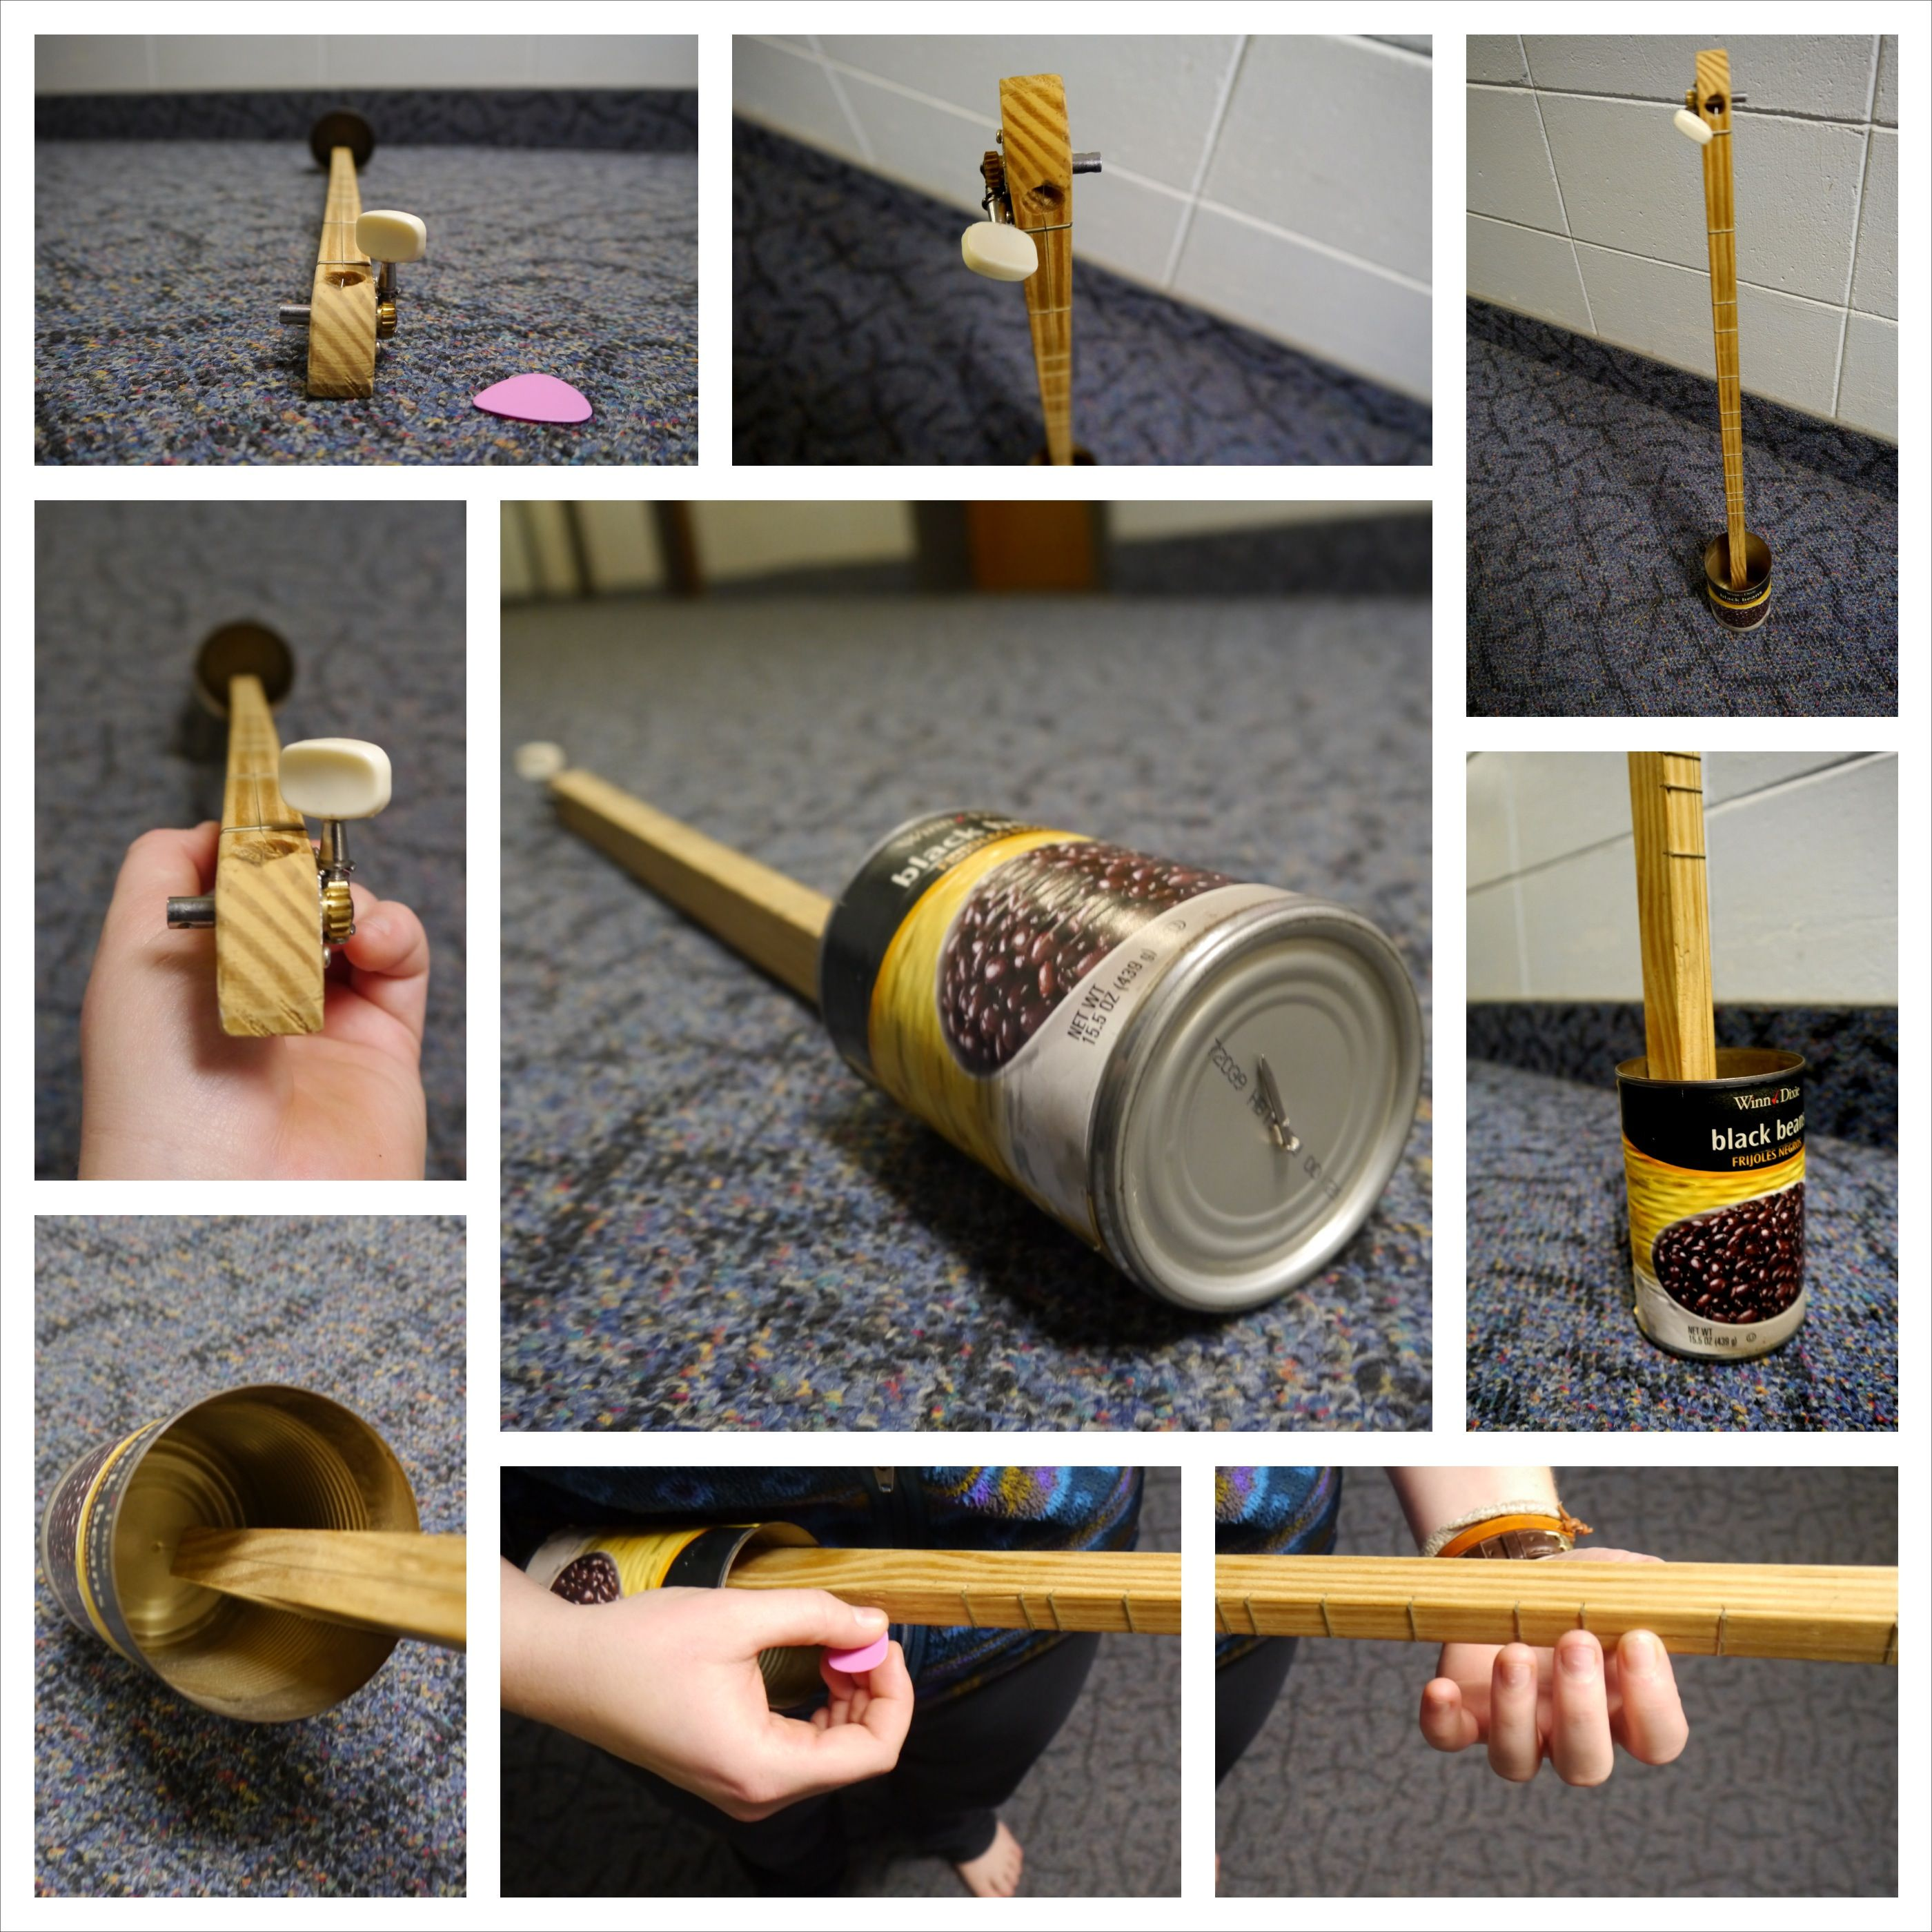 Behold: The Canjo! Made from a can, nail, wooden neck, and